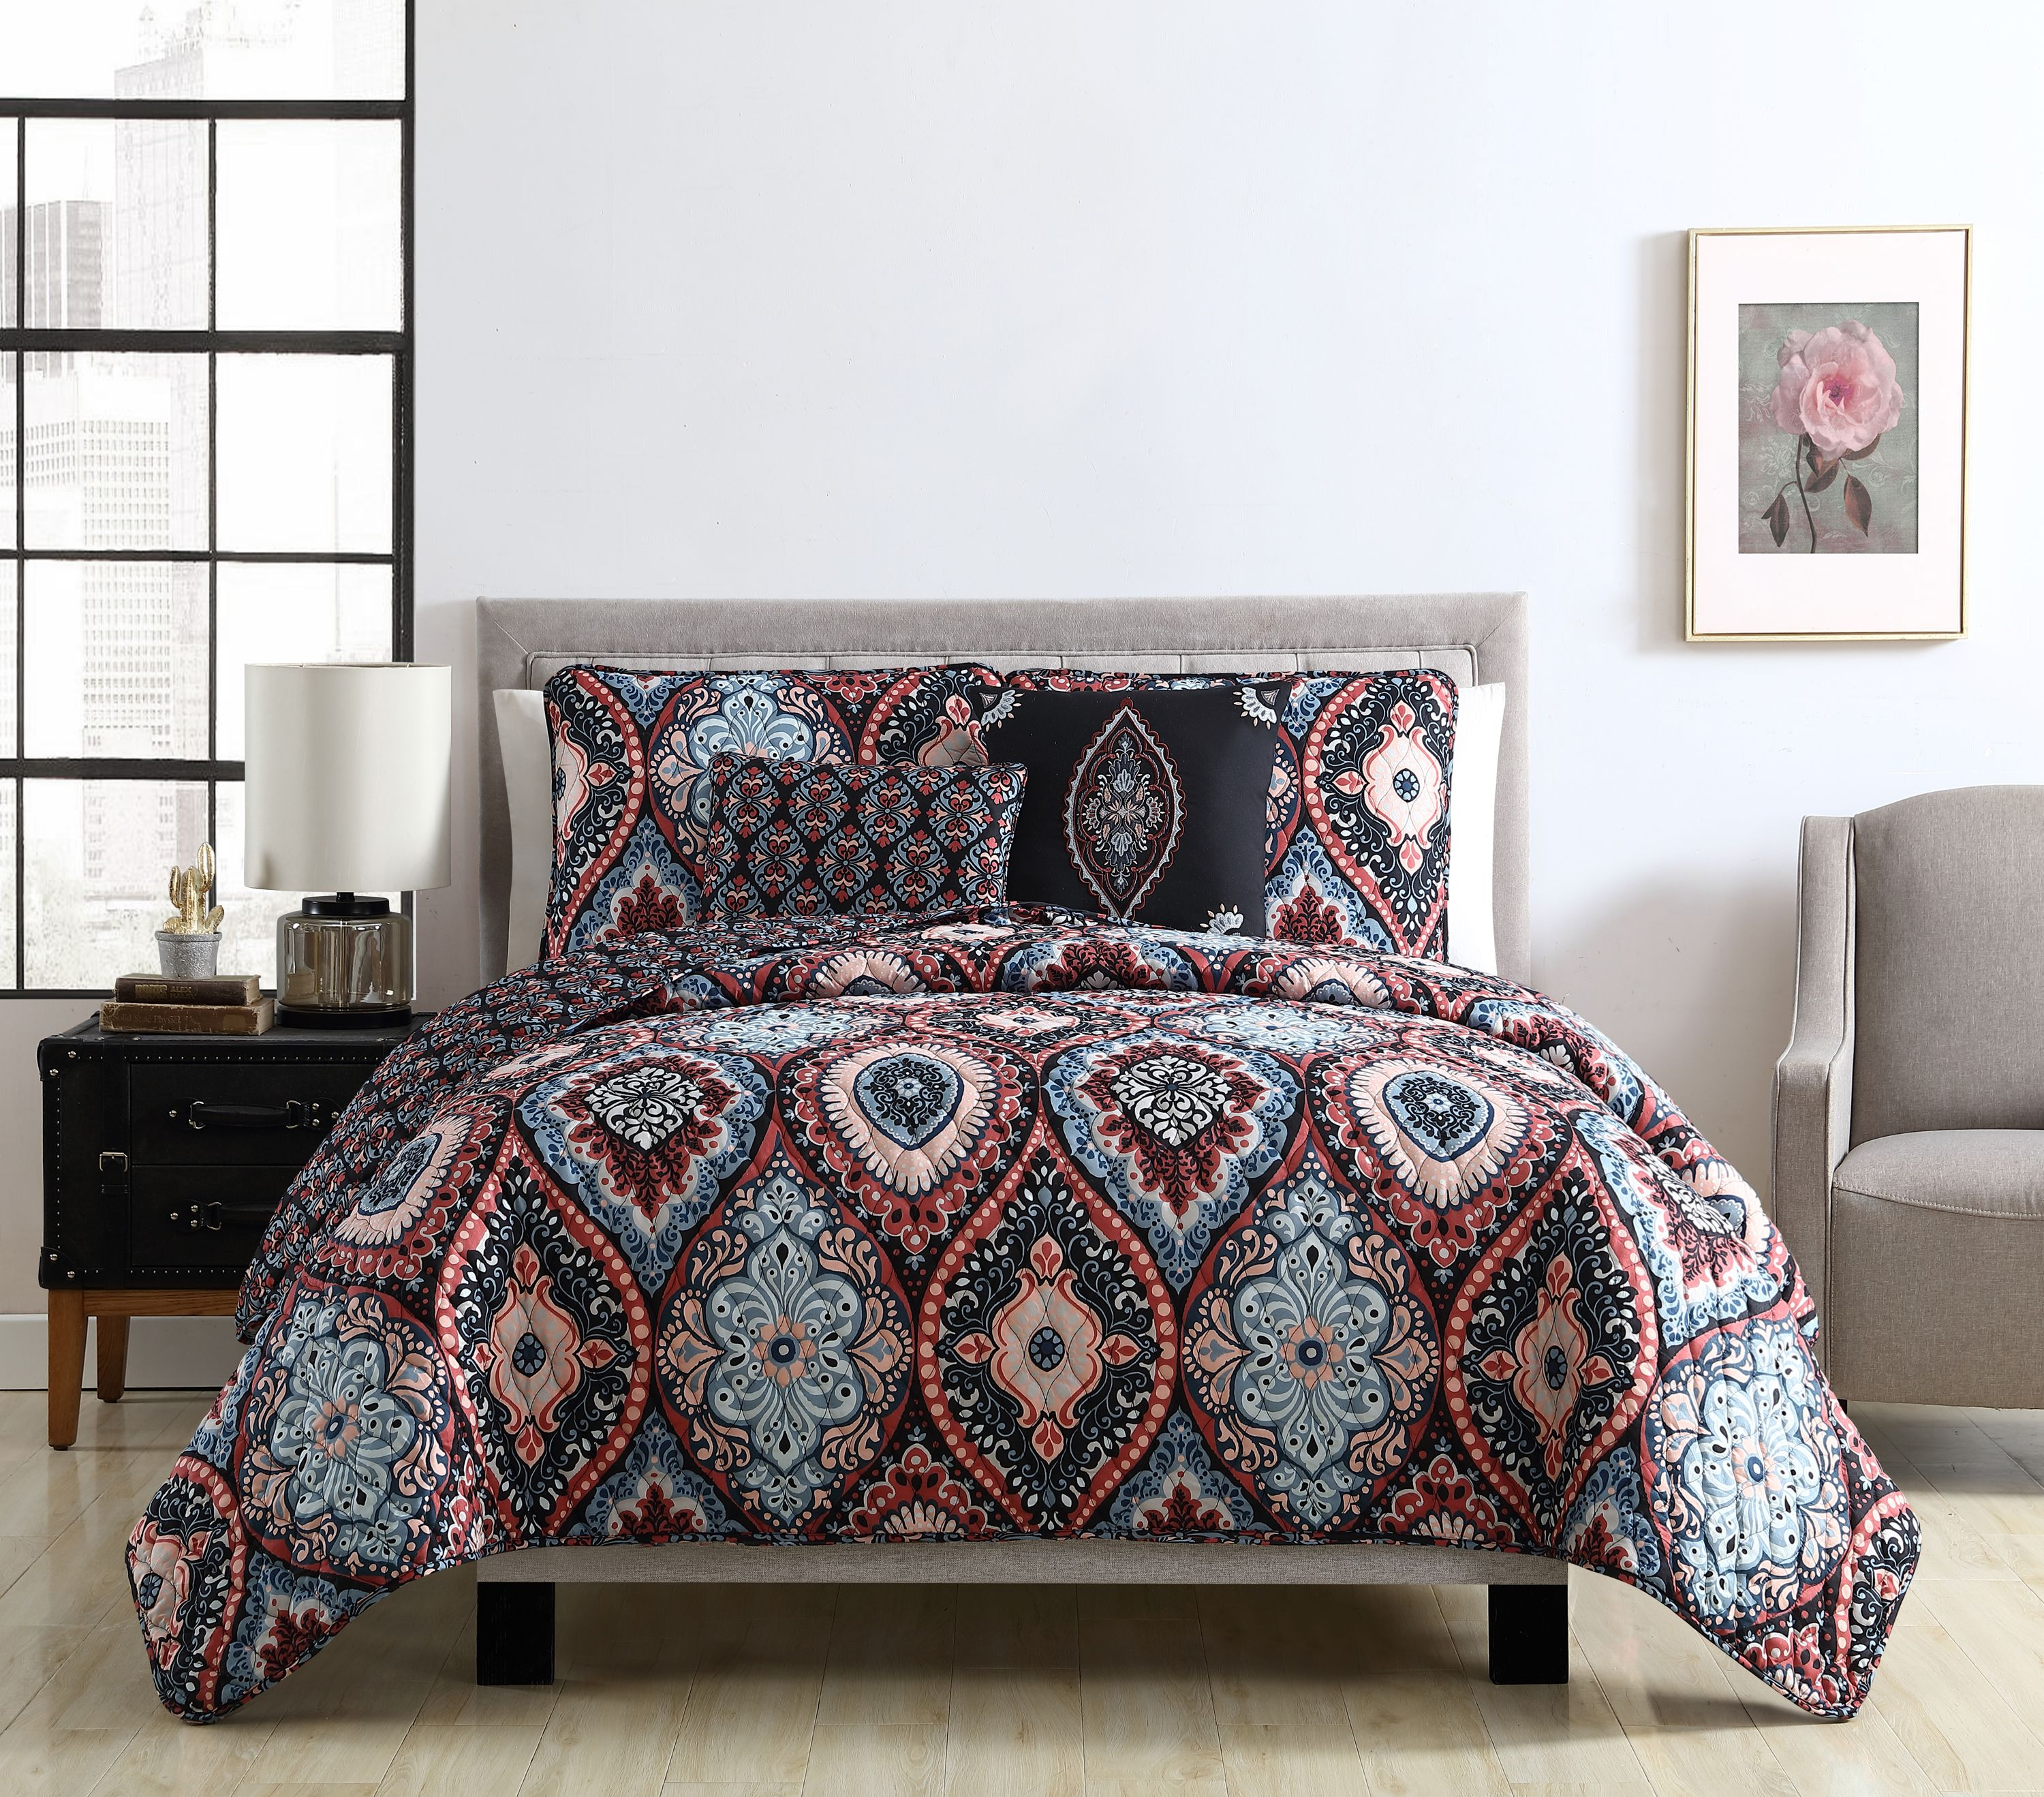 VCNY Home Coria Ogee Reversible Quilt Set, Full Queen, Burgundy Blue by VCNY Home